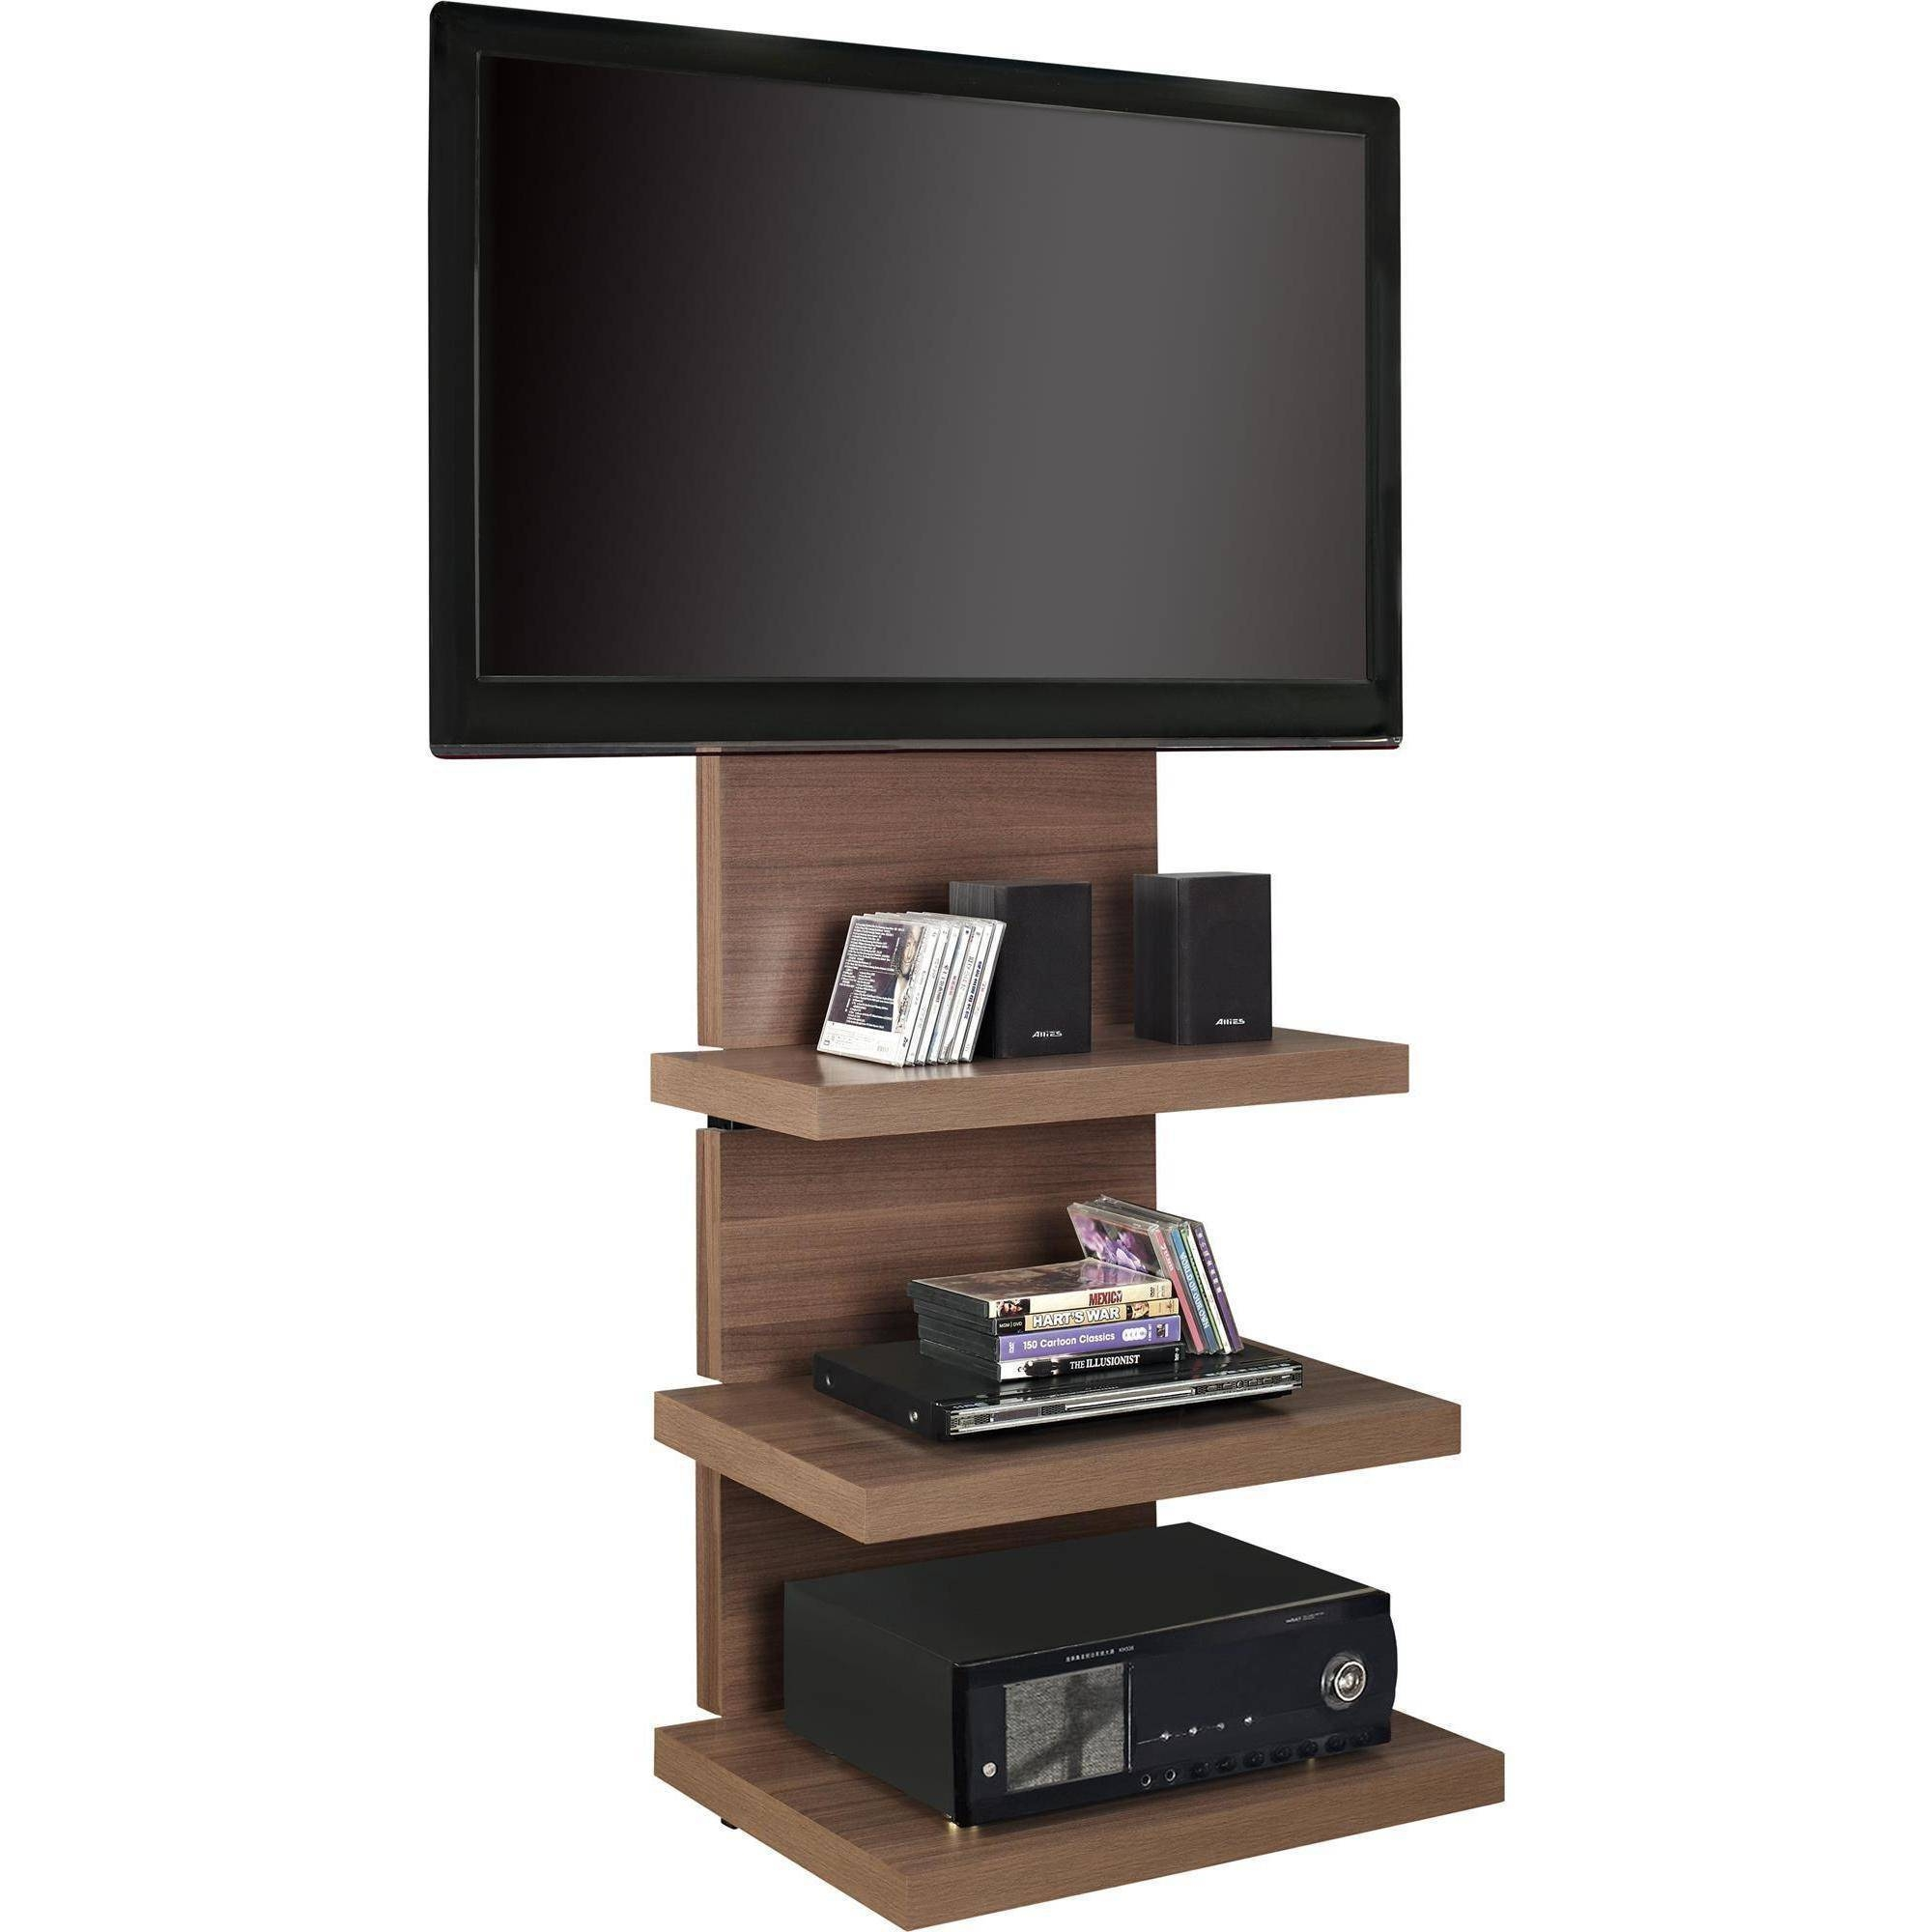 Ameriwood Home Elevation Altramount Tv Stand For Tvs Up To 60 with Tv Stands For 70 Inch Tvs (Image 4 of 15)